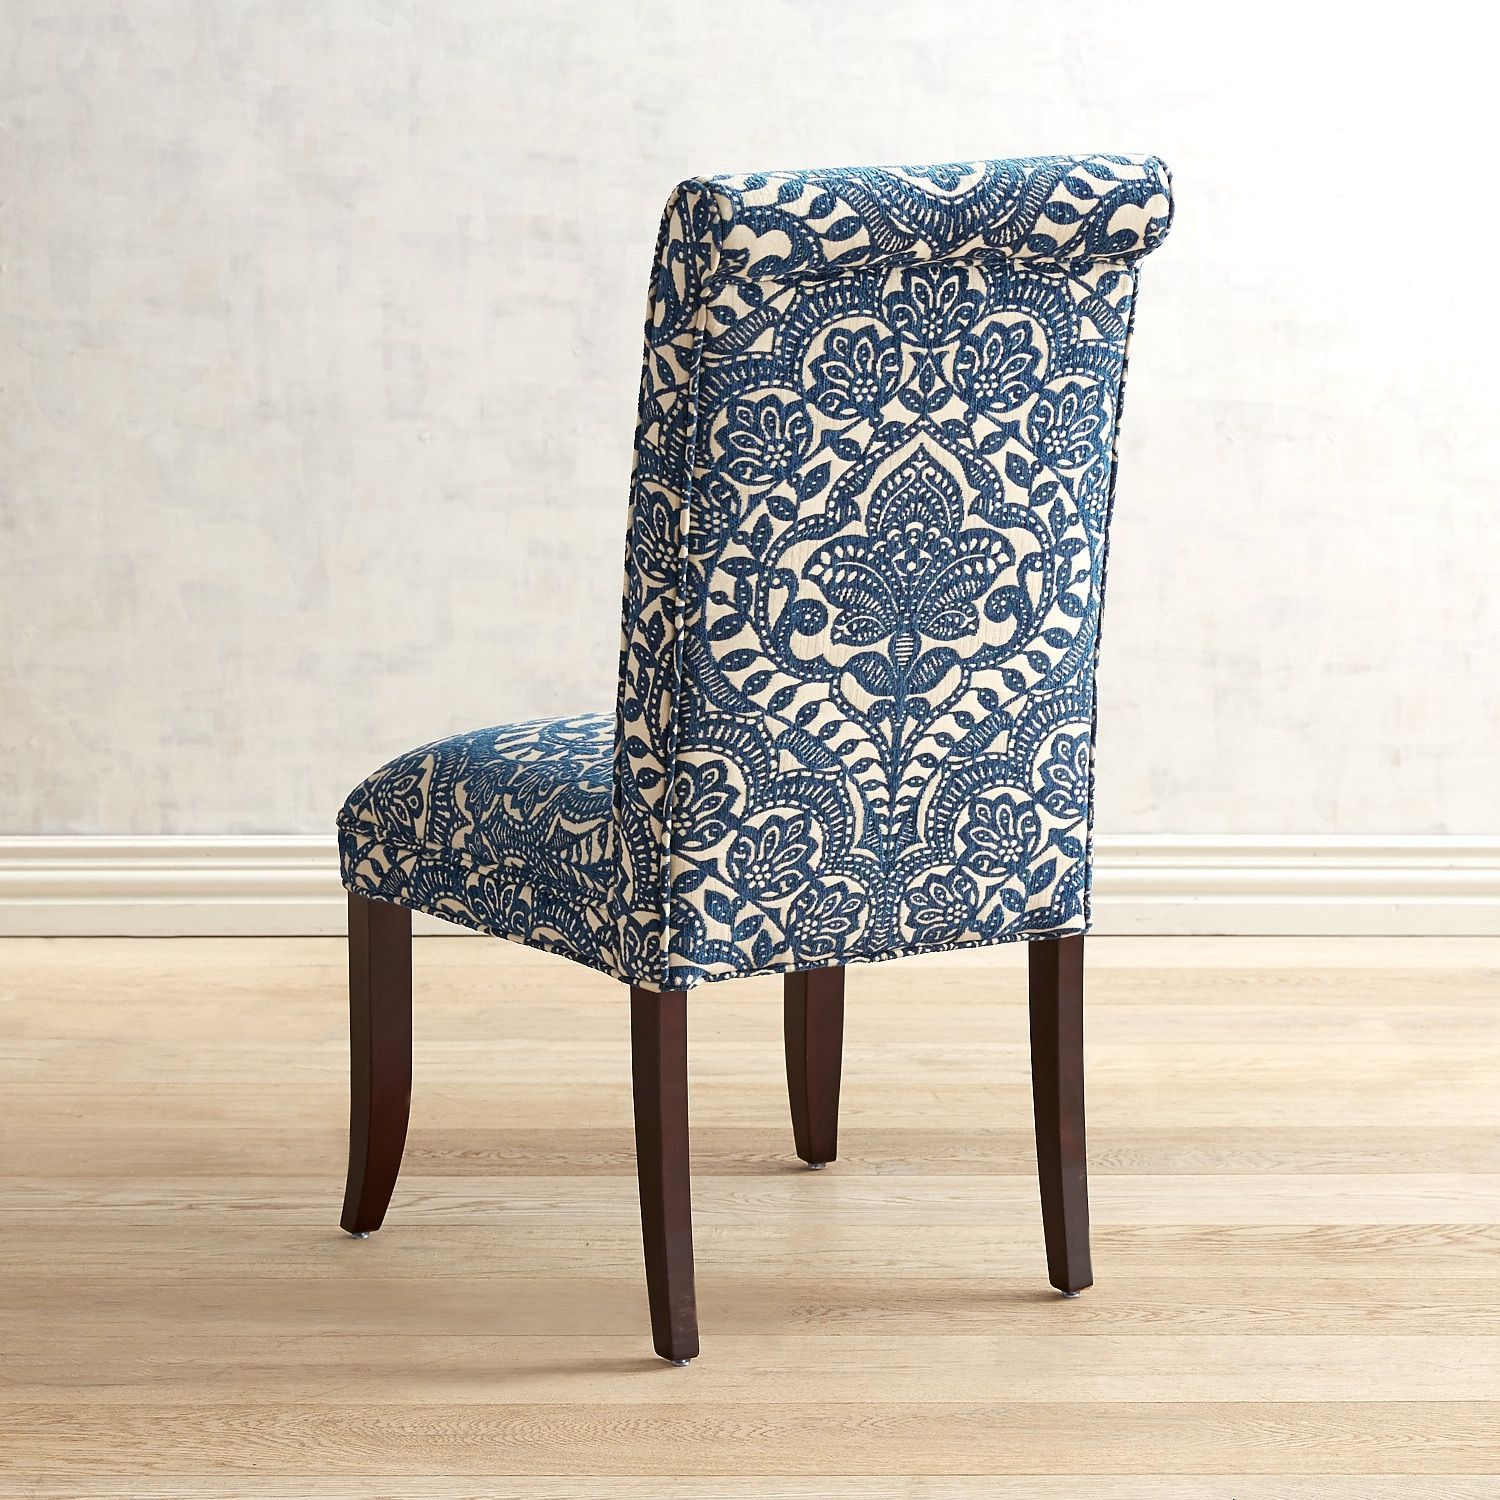 Best Angela Navy Blue Trellis Dining Chair In 2020 Chair Patterned Chair Accent Chairs For Living 400 x 300